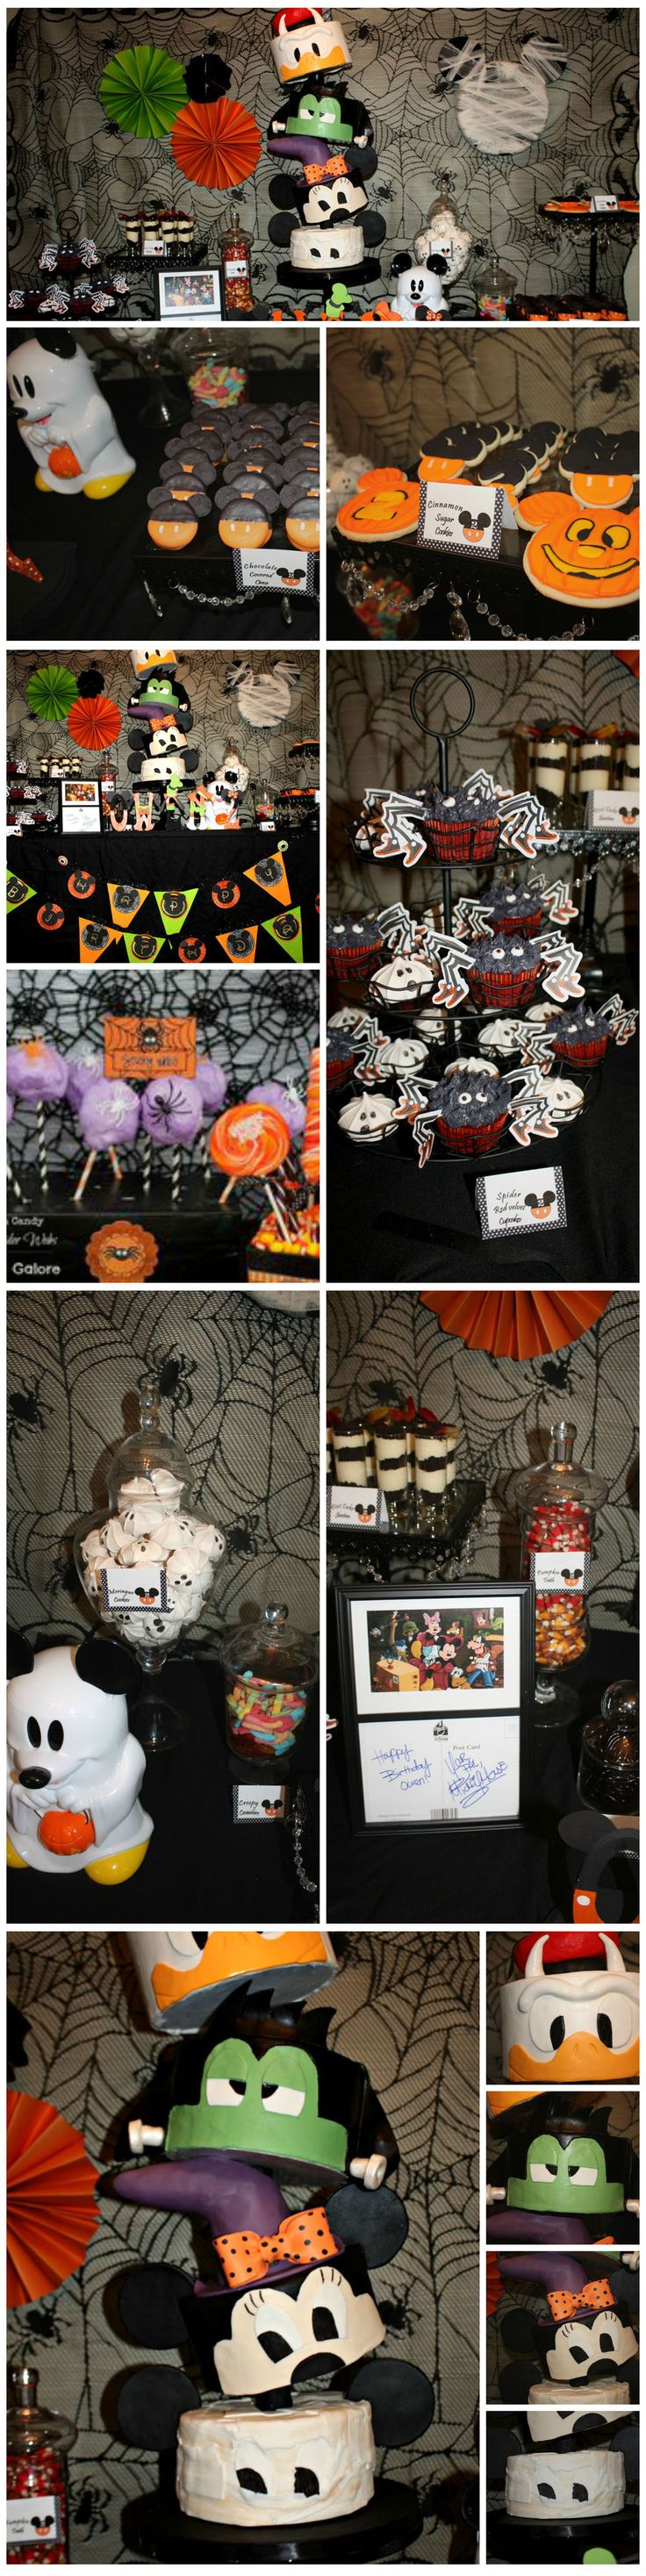 Some fun buffet ideas for a Mickey Mouse & Friends Halloween Party.